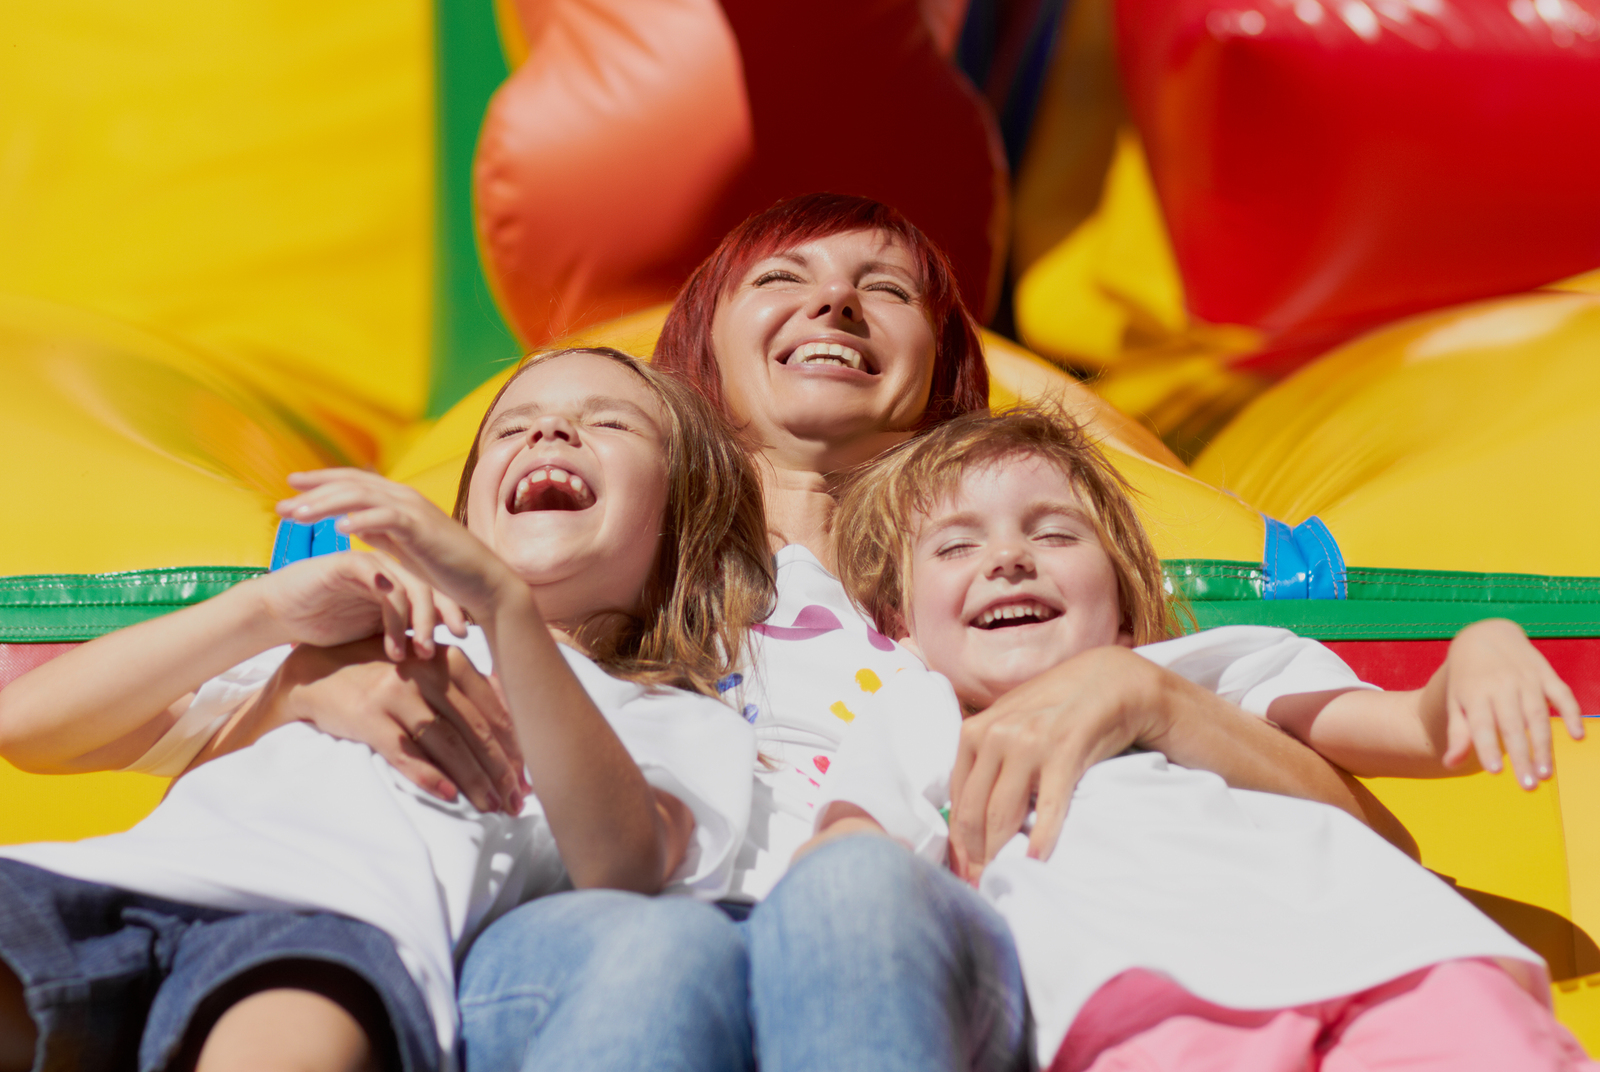 Bouncy Houses Can Help Make A Childs Party Truly Memorable You Choose House That Will Fit The Ages And Interest Of Your Guests As They